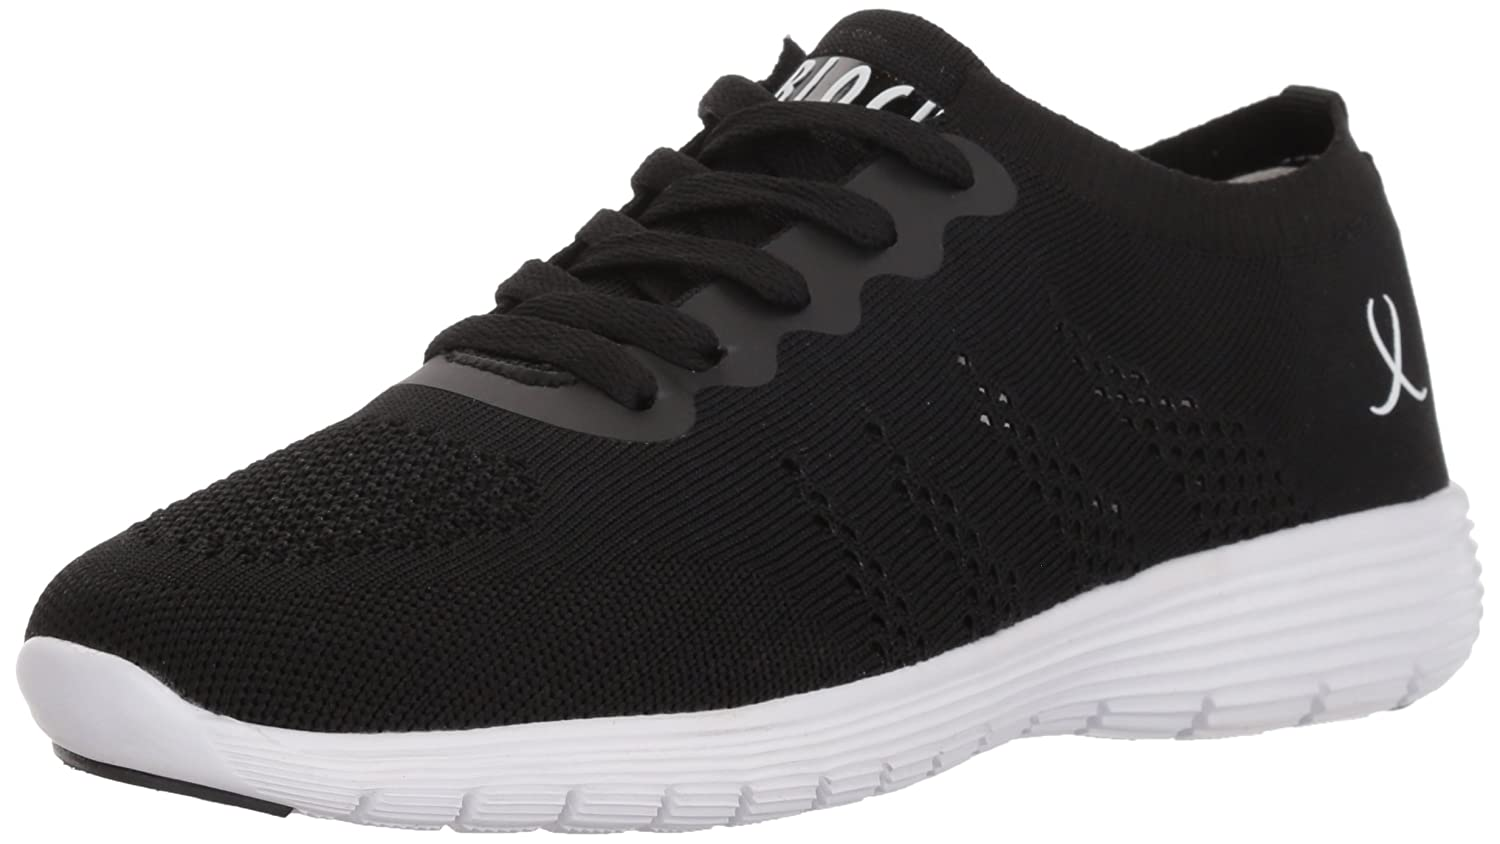 Bloch Women's Omnia Shoe B079ZDBH3M 9.5 M US|Black